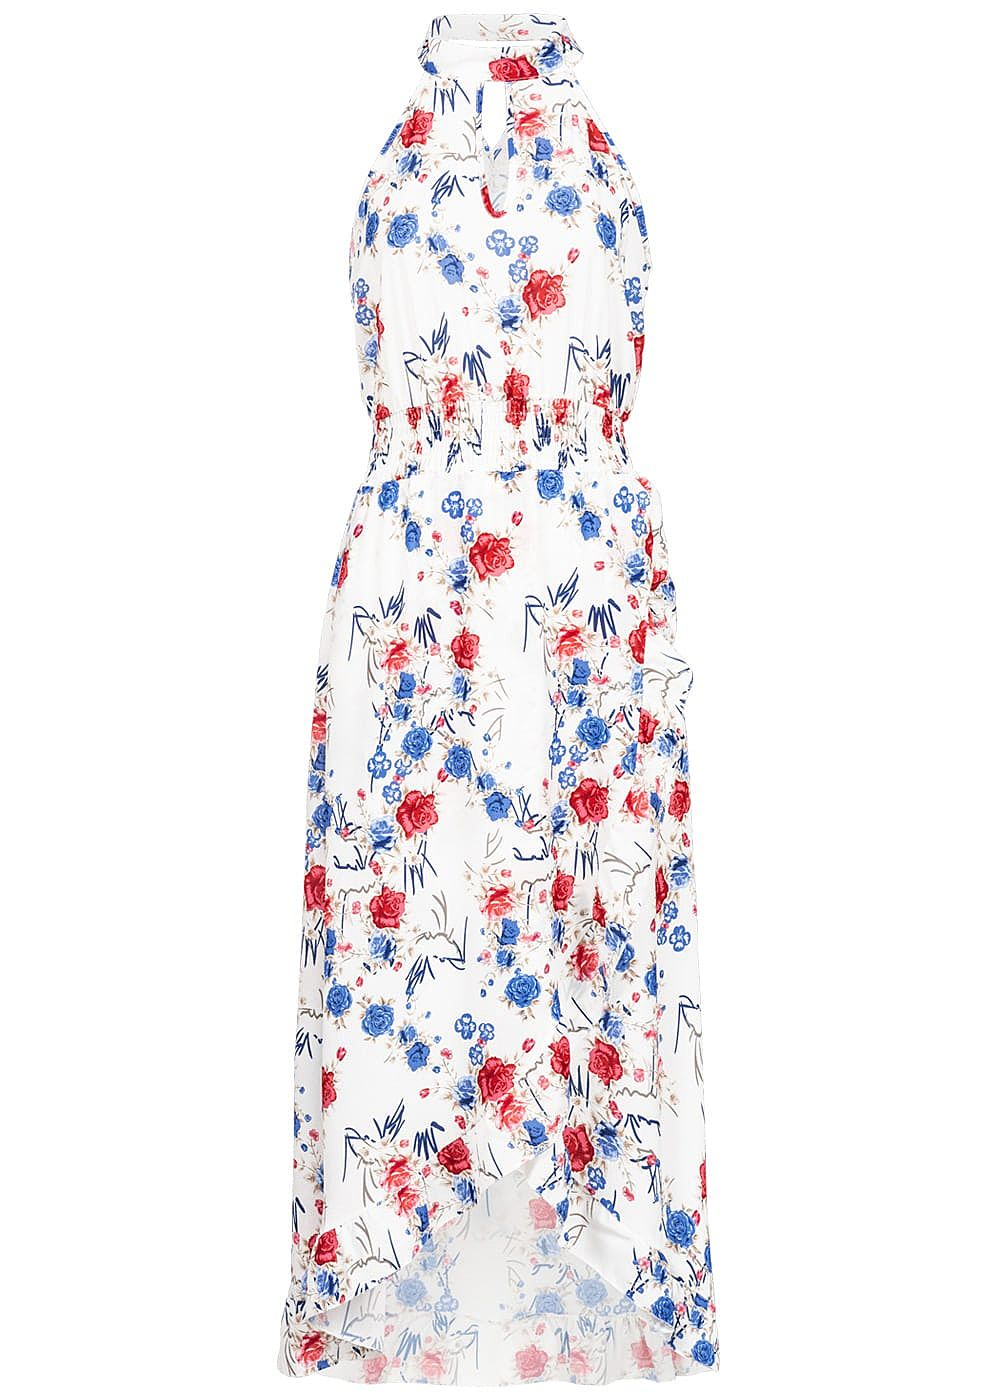 Styleboom Fashion Damen Choker Maxi Dress Flower Print weiss blau rot - Art.-Nr.: 19056375